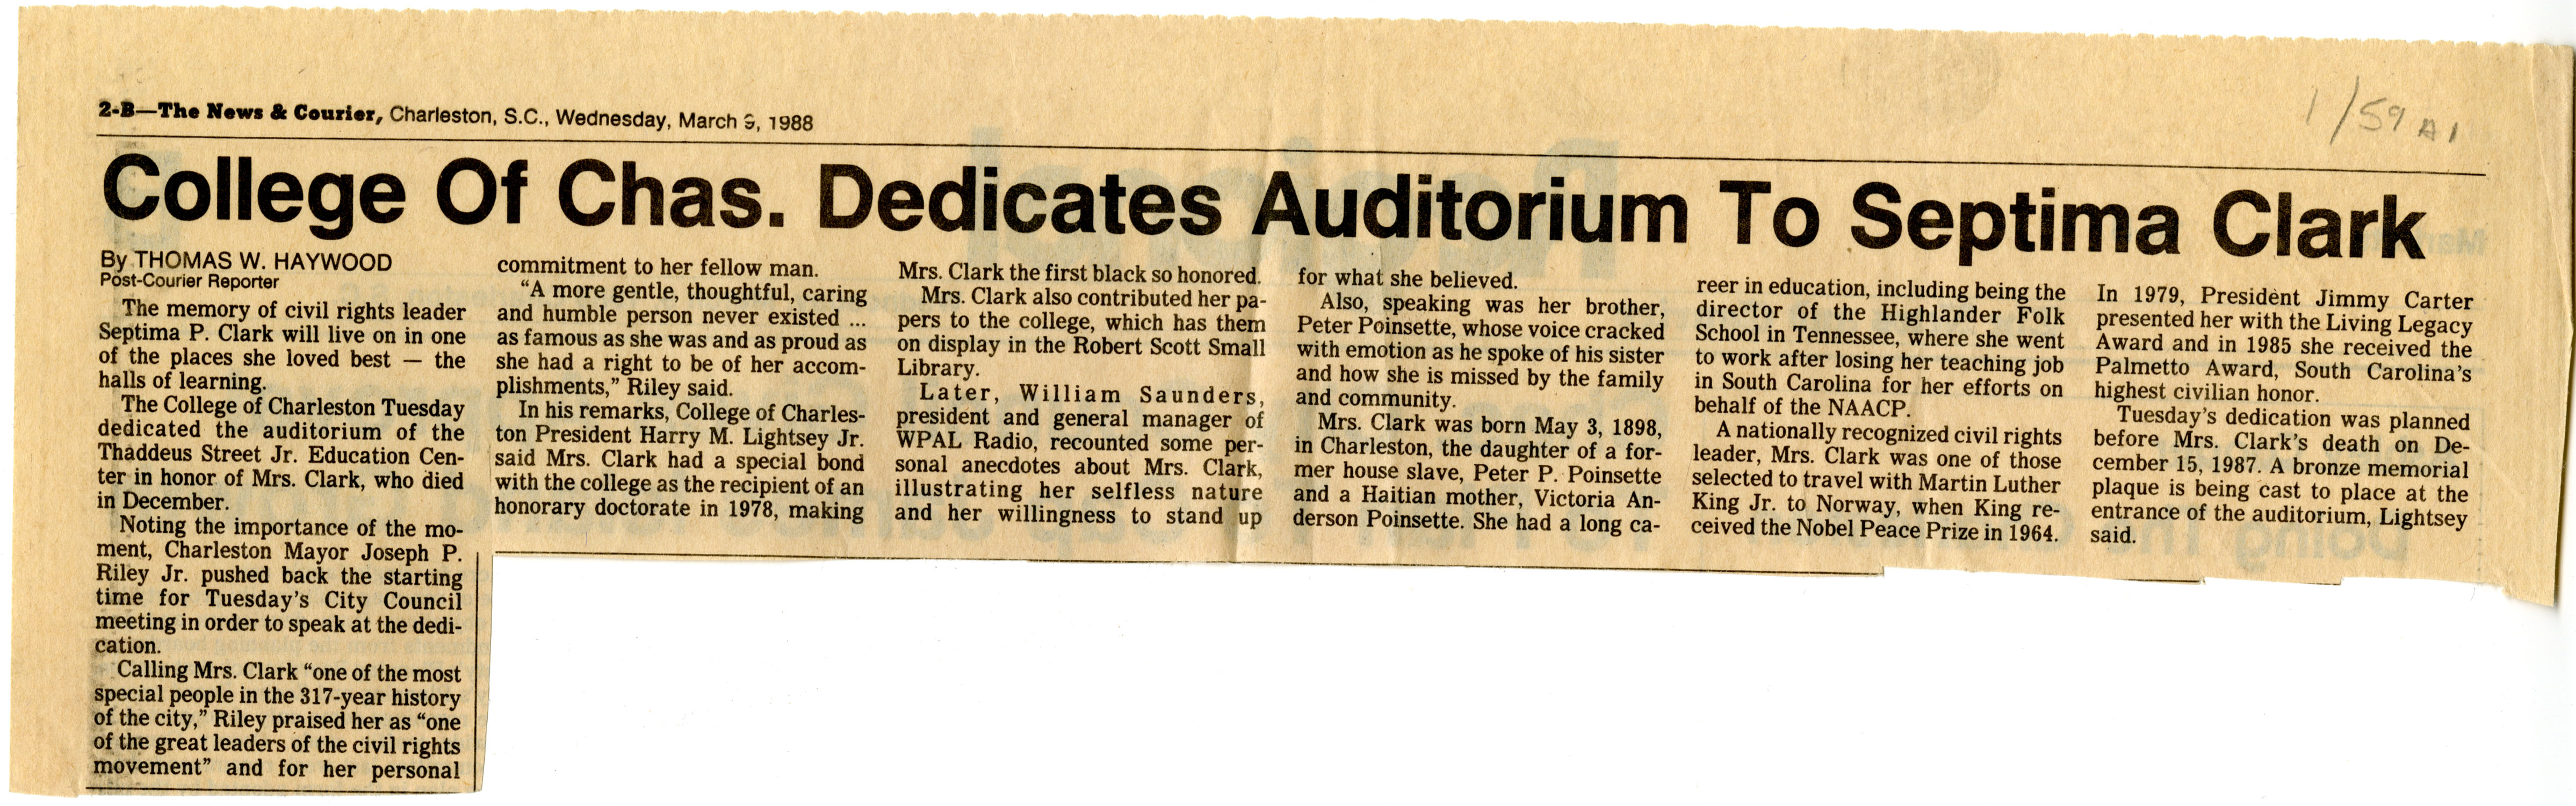 Newspaper Article, March 9, 1988